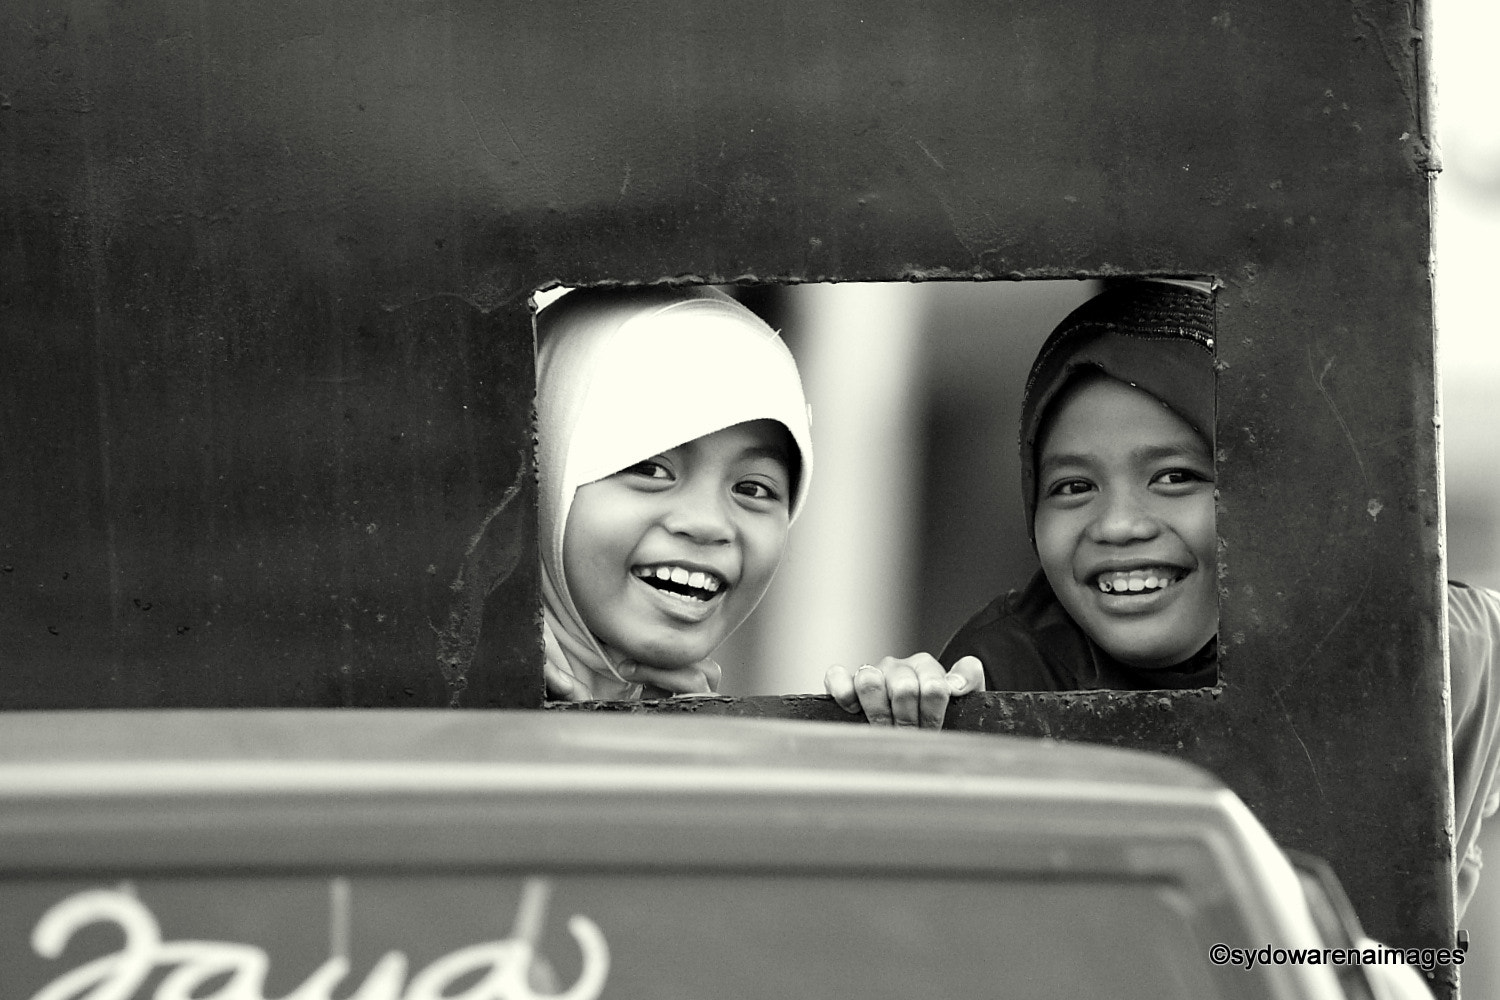 Photograph .sumatran children. by SydowArenaImages  on 500px